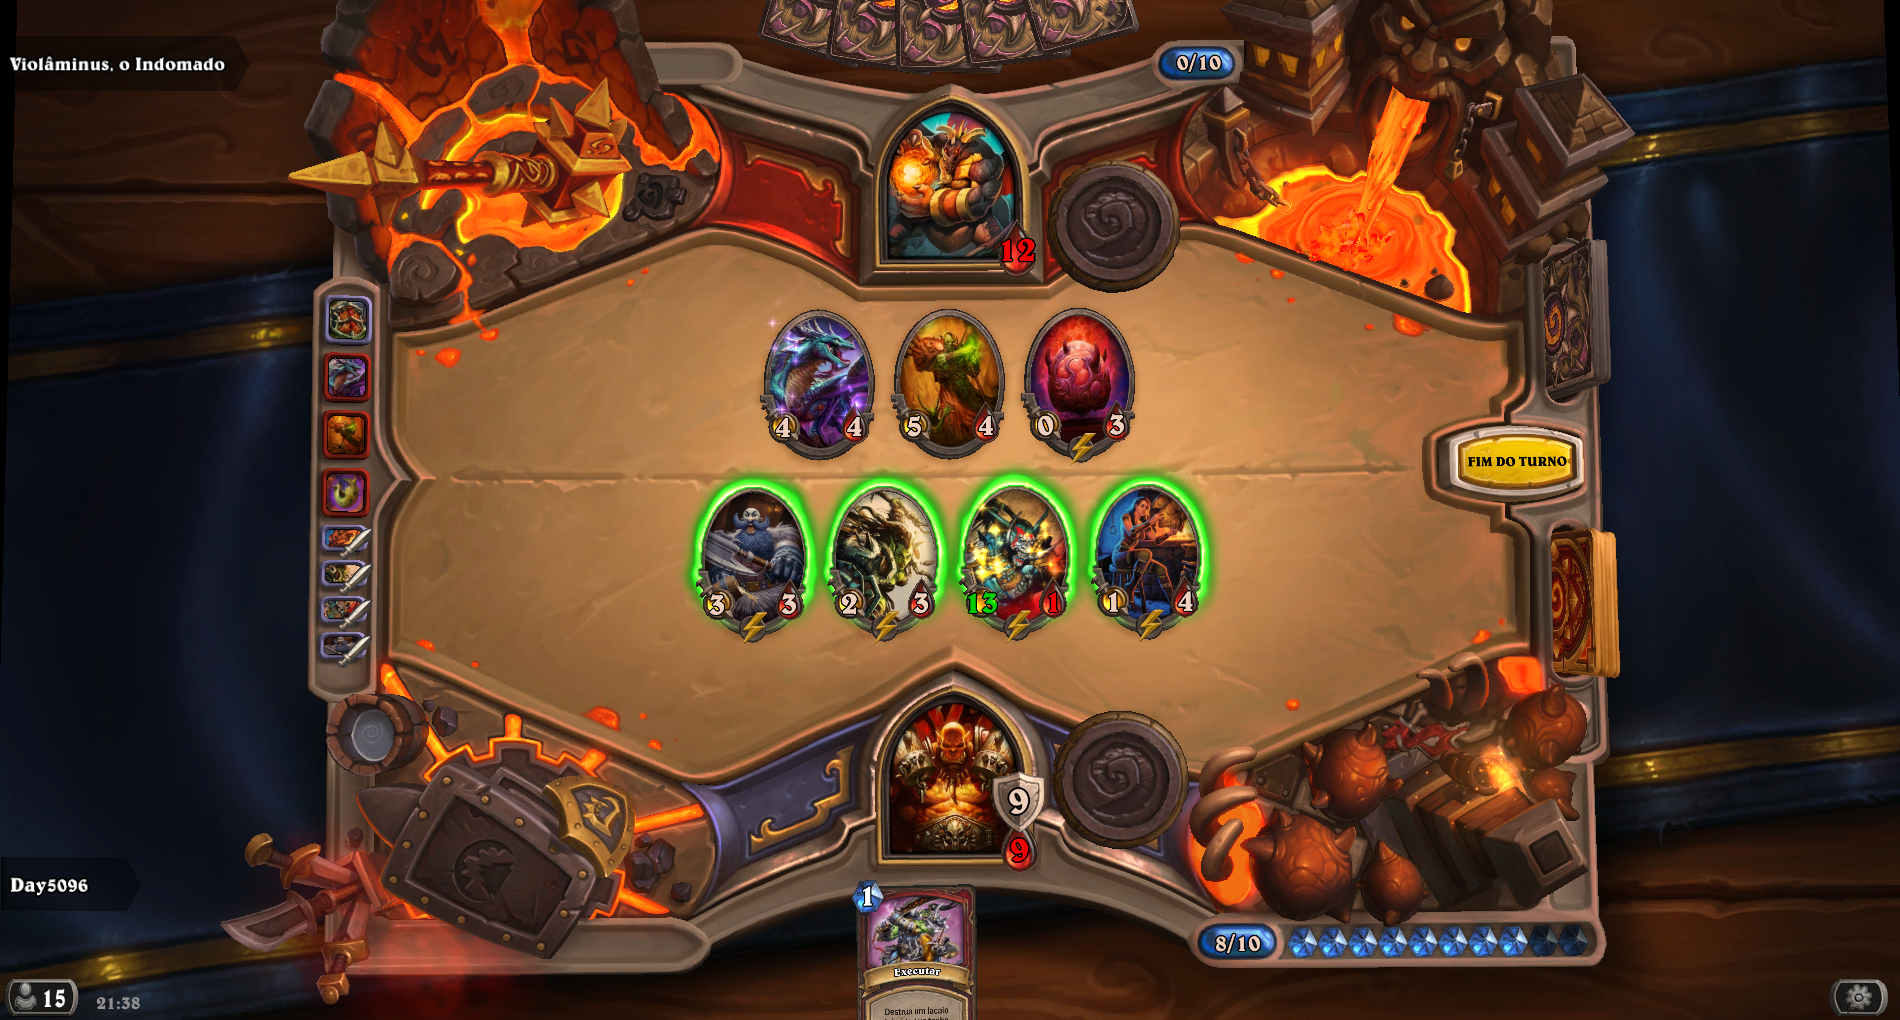 Hearthstone Screenshot 04-24-15 21.38.52